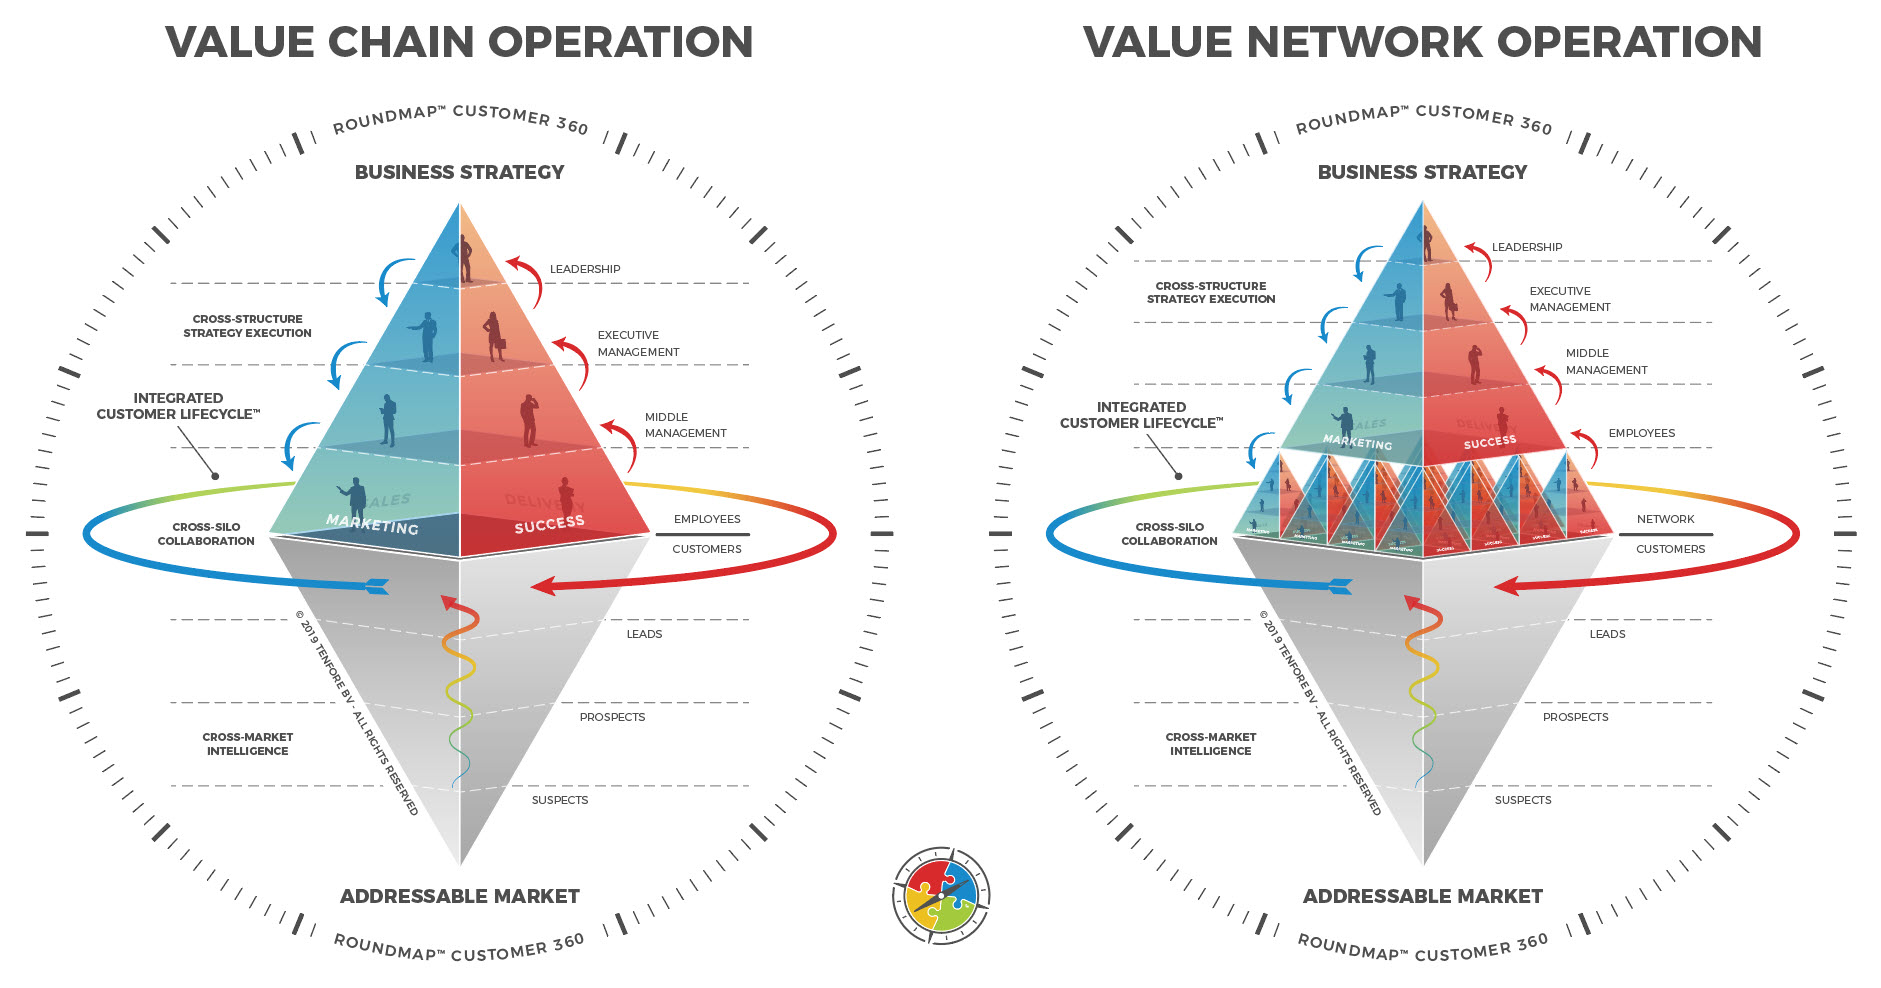 ROUNDMAP Value Chain versus Value Network